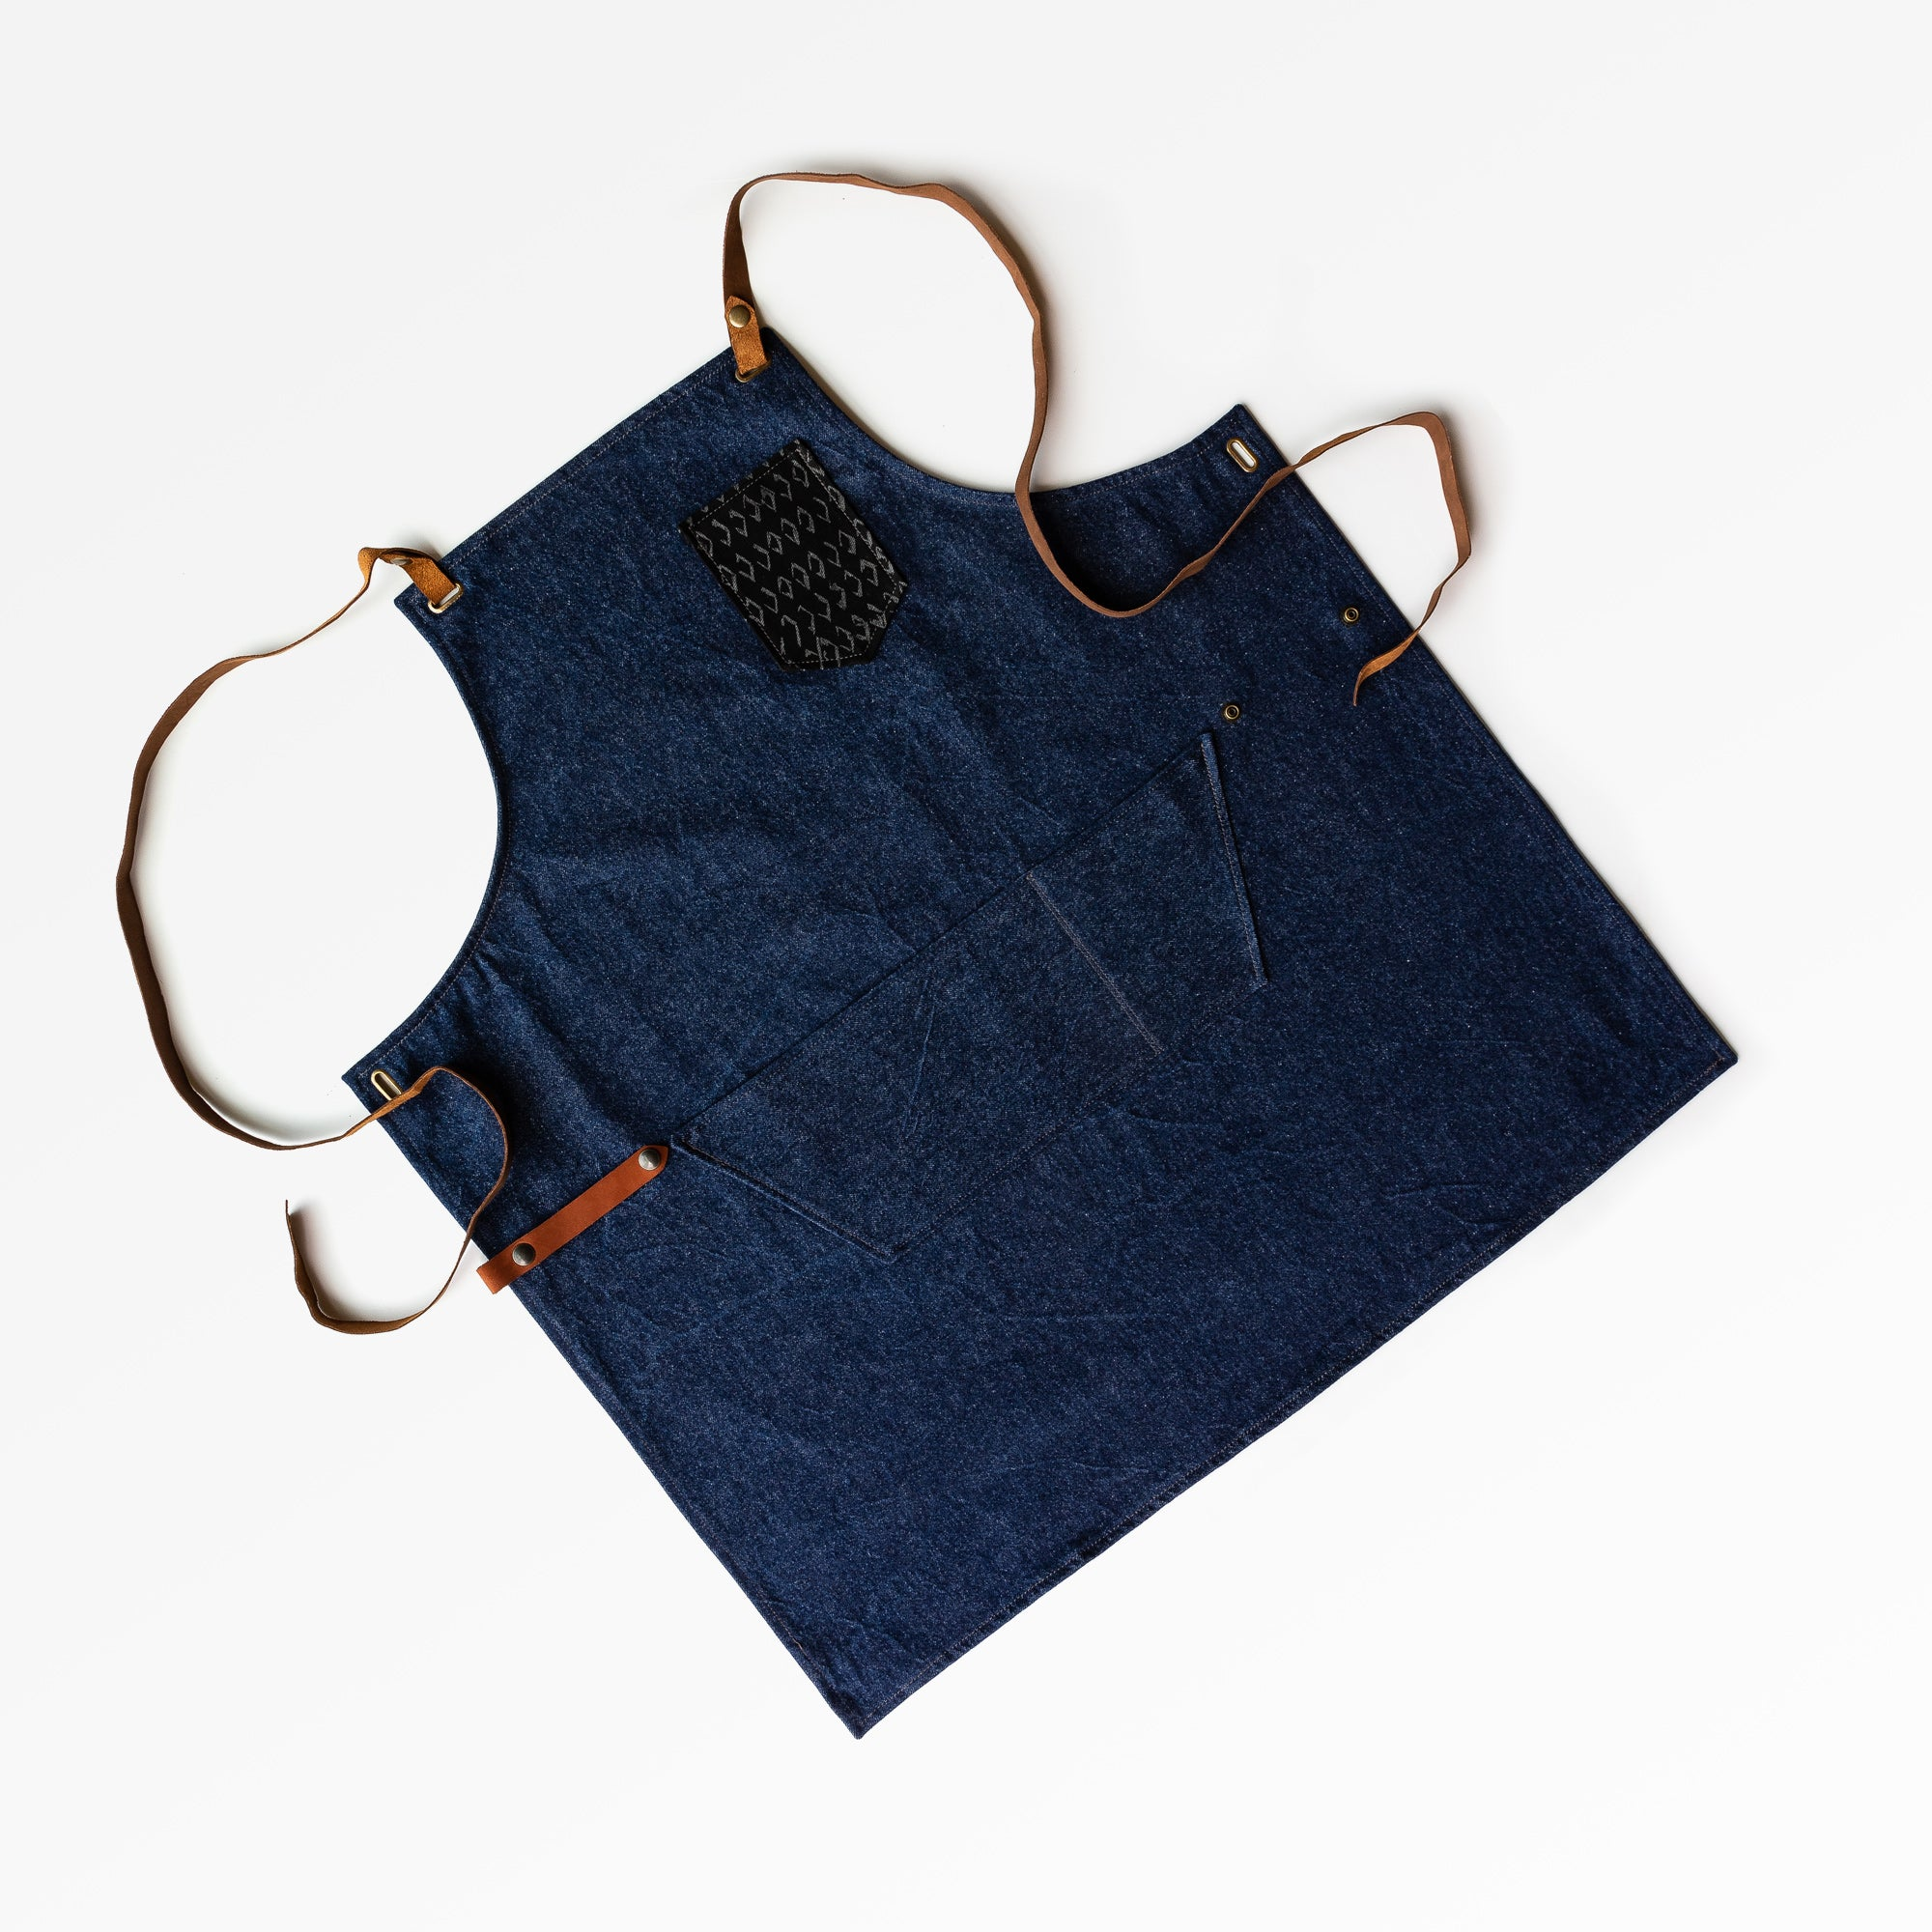 Diamonds Pattern - Handmade Sturdy Workshop & Gardening Apron in Denim & Leather - Sold by Chic & Basta